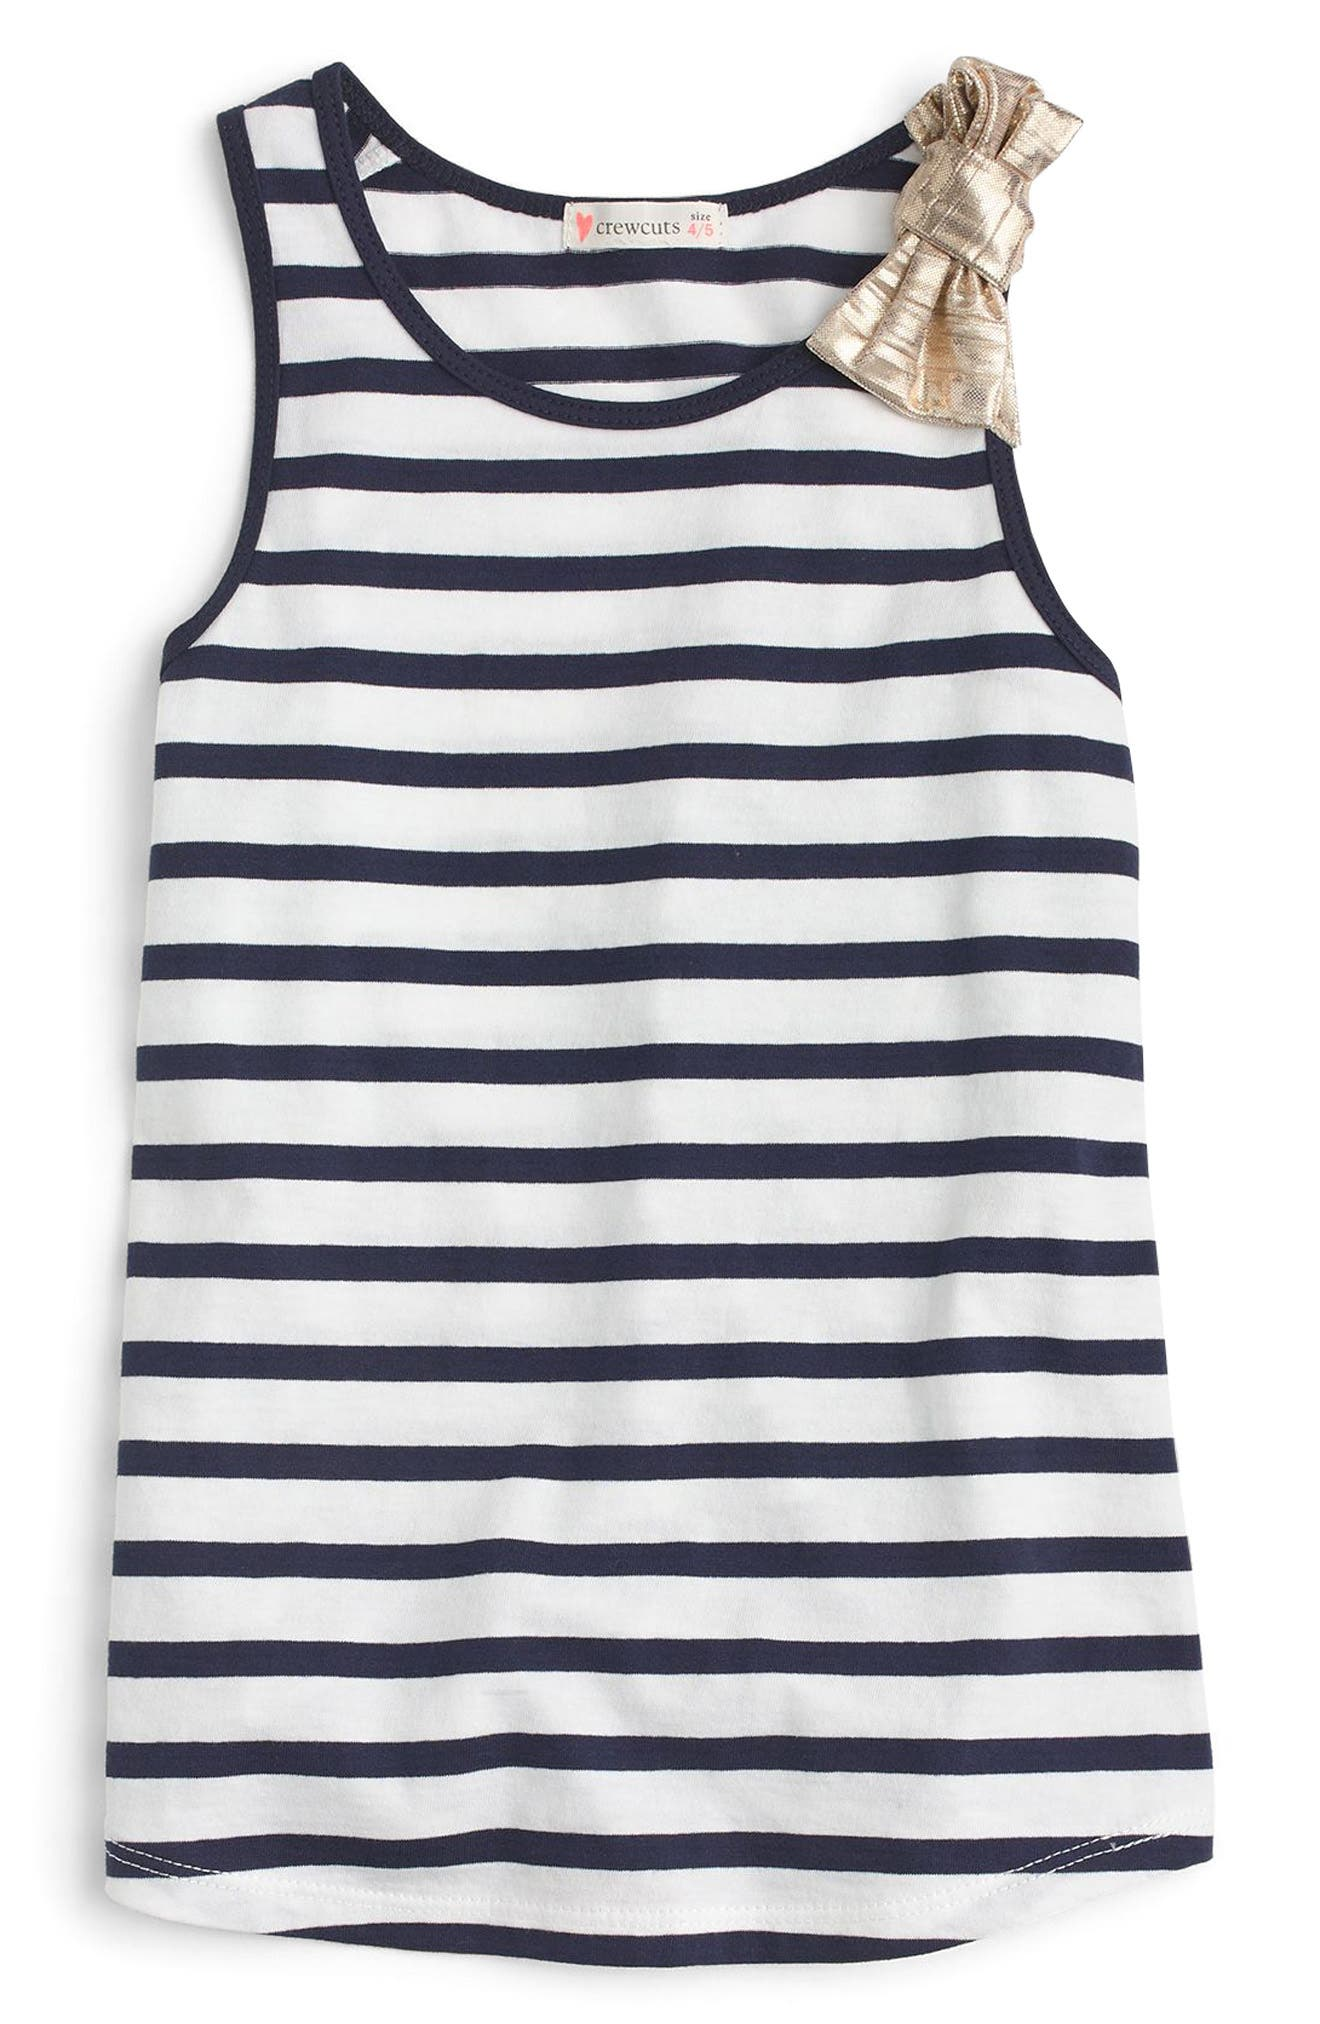 crewcuts by J.Crew Stripe Bow Tank Top (Toddler Girls, Little Girls & Big Girls)